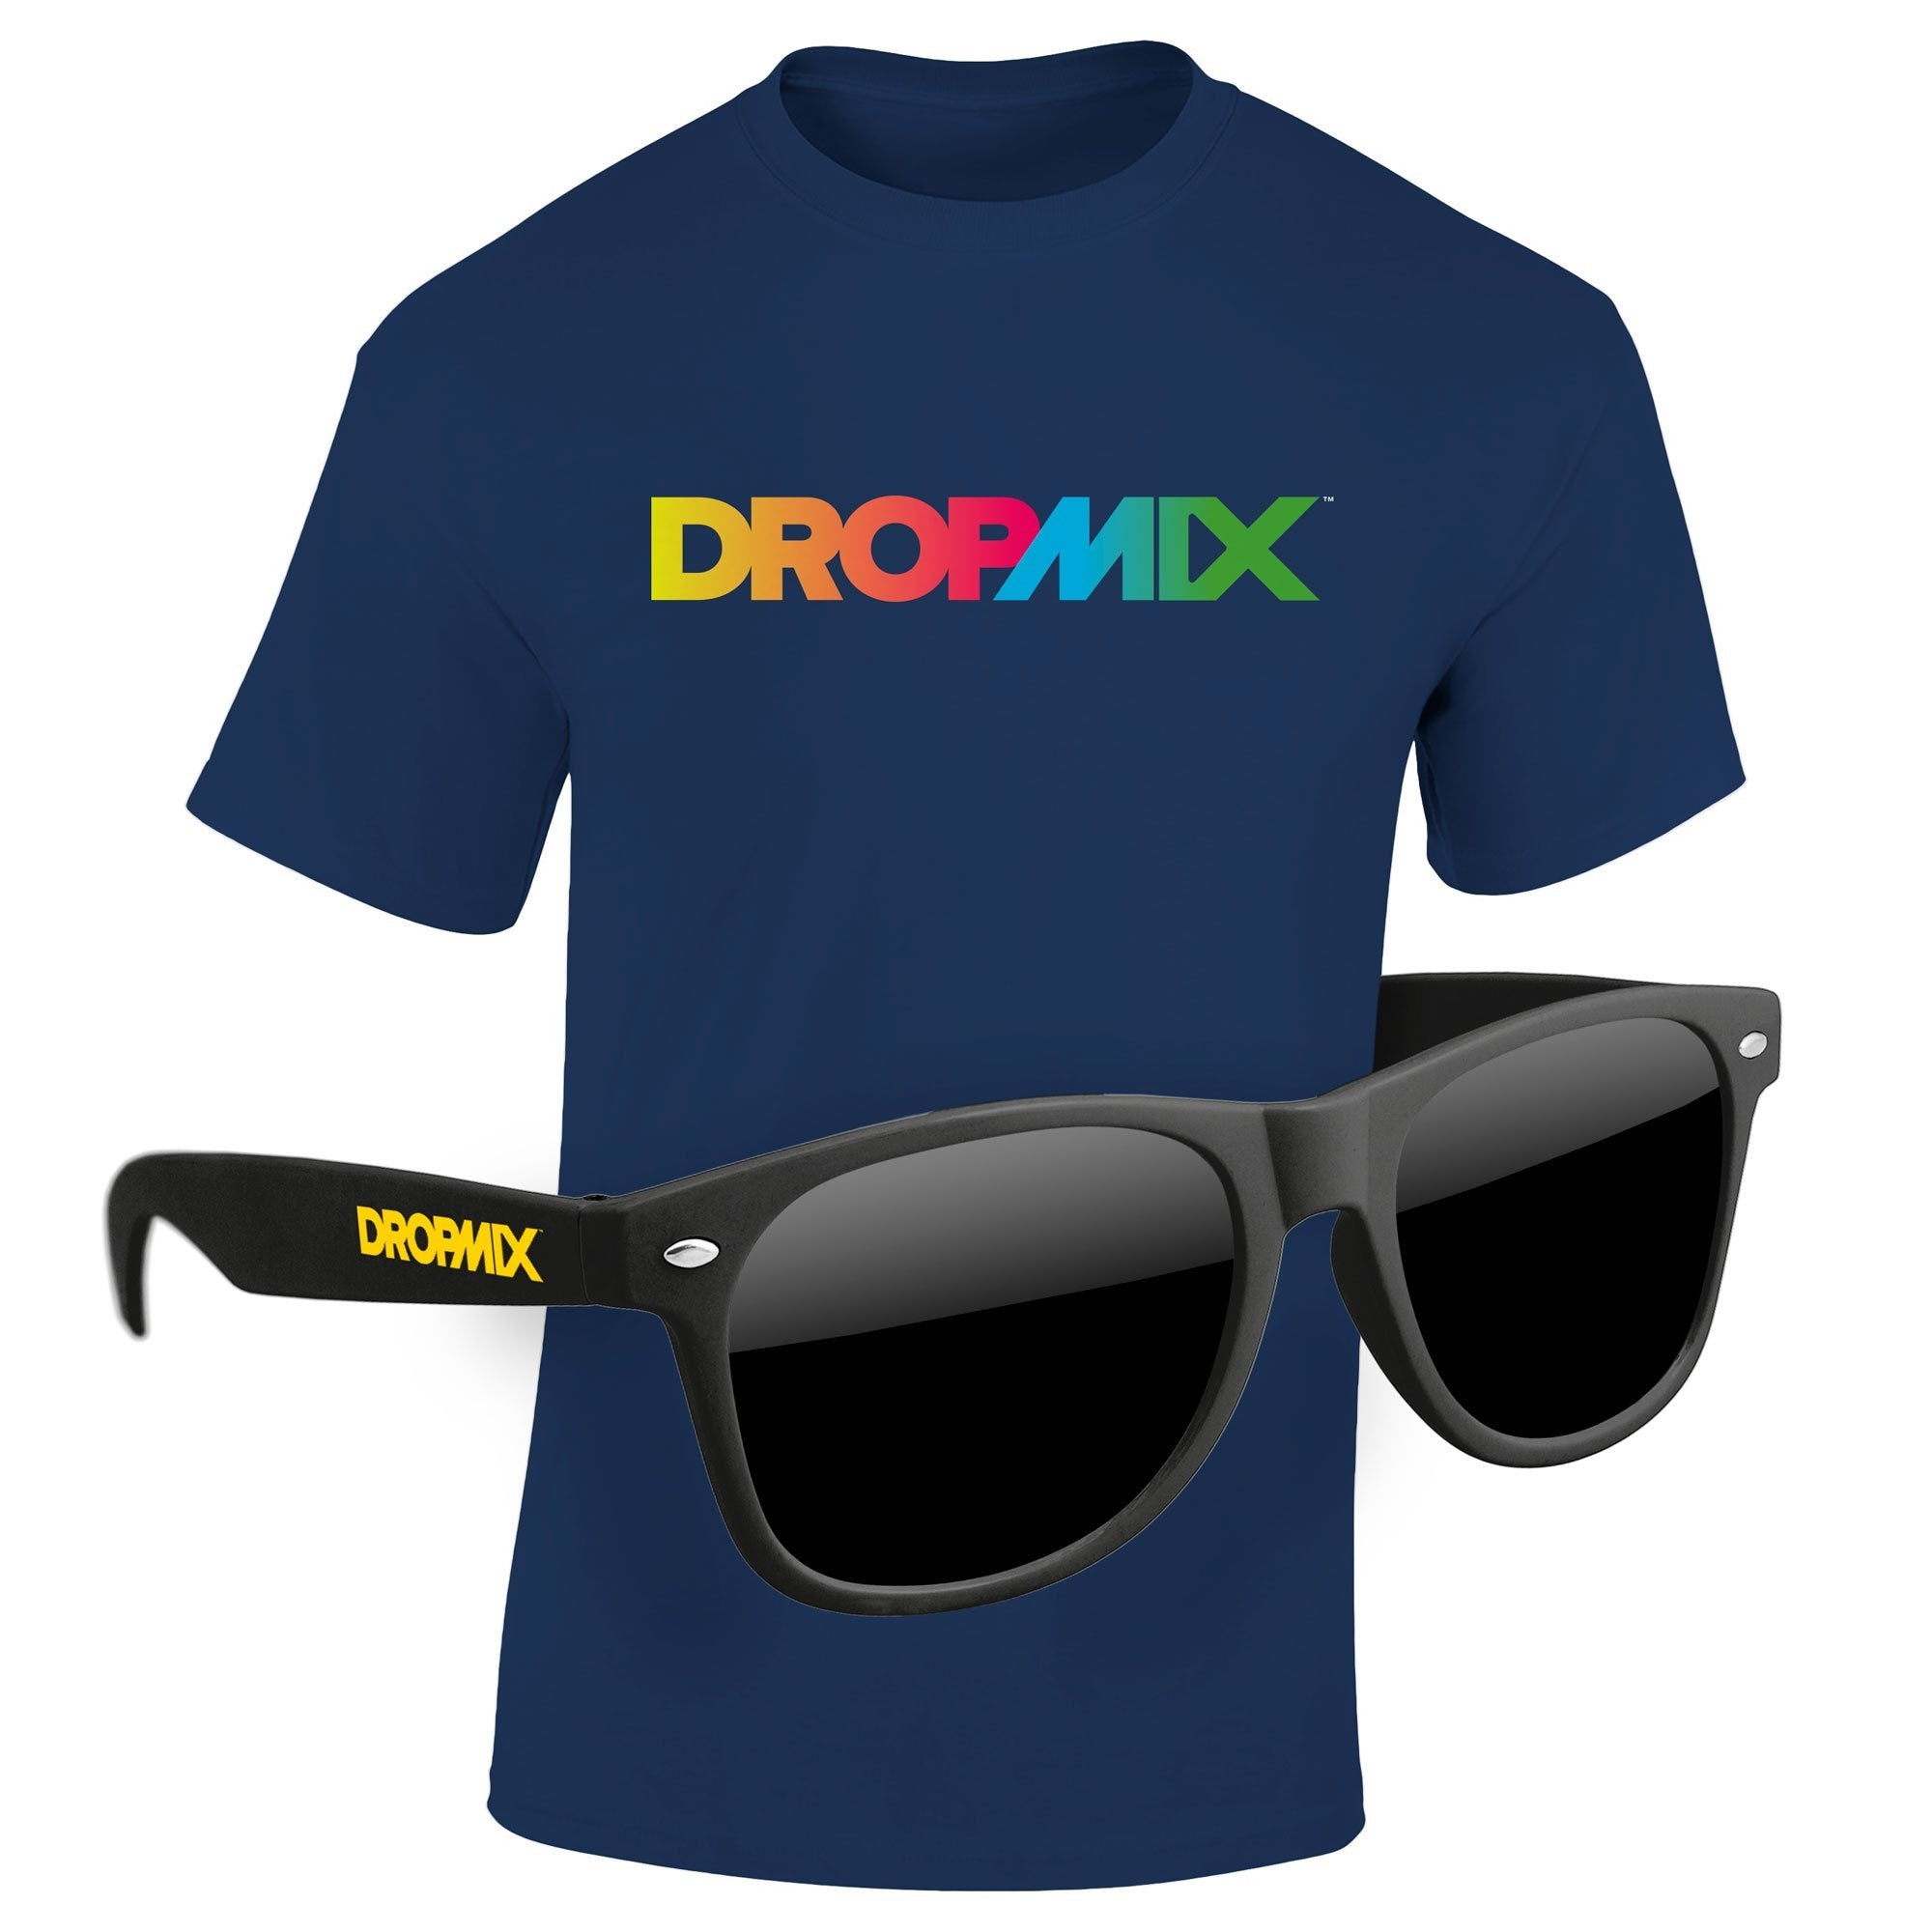 "T-Shirt & Sunglasses Kit - Full-Color On Color/Black T-Shirt (Up To 12"" x 12"")"